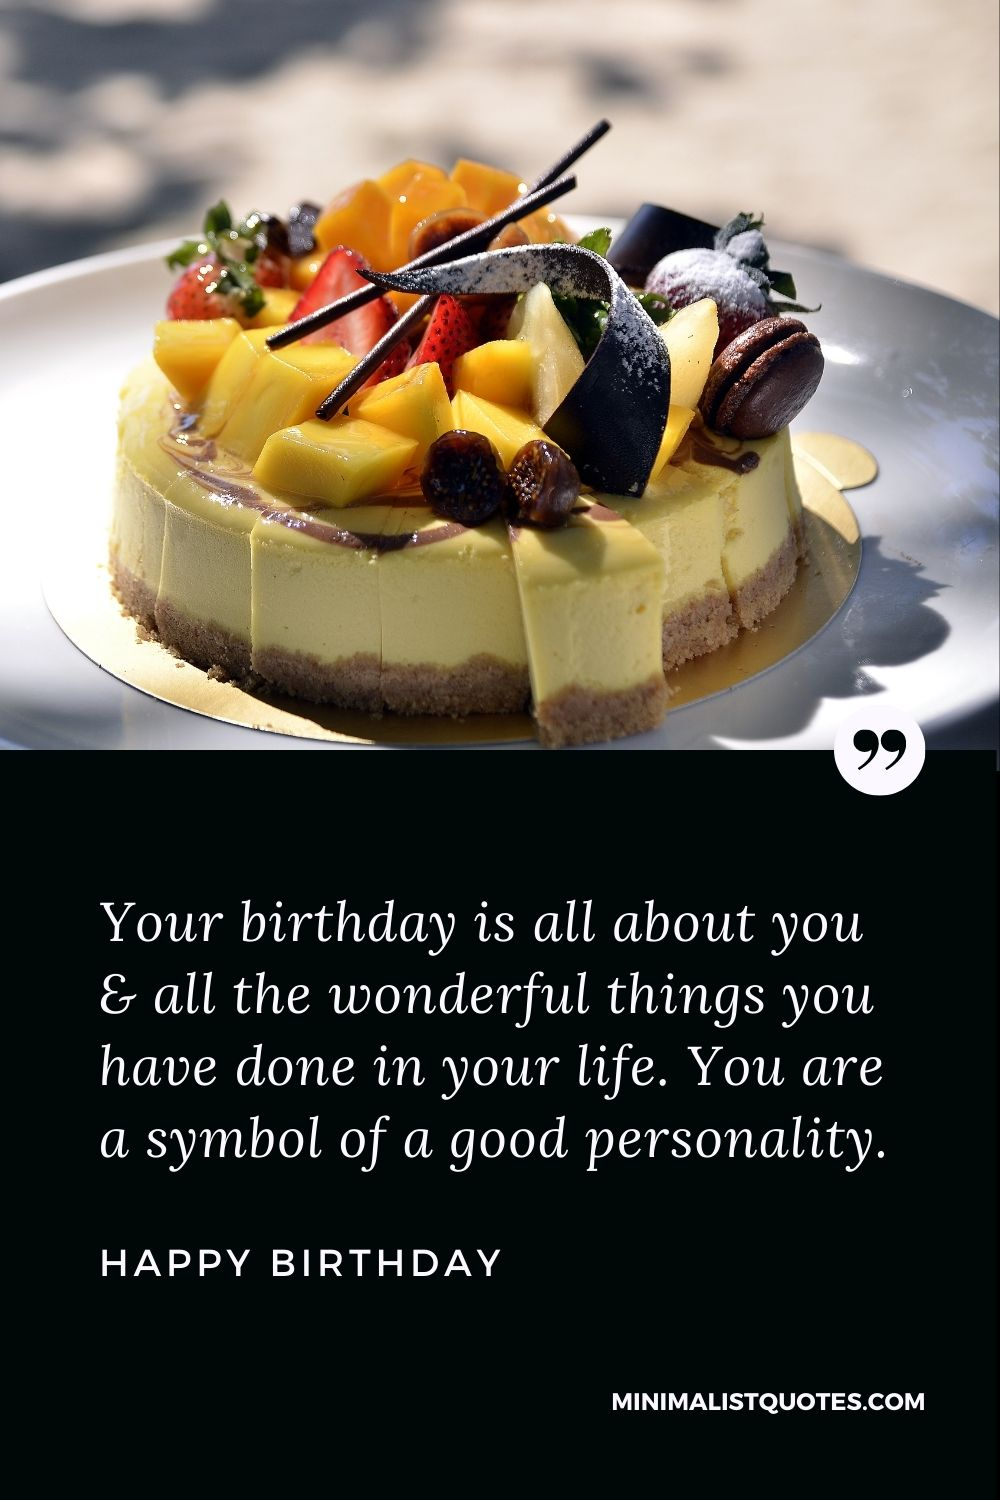 Happy Birthday Wish - Your birthday is all about you & all the wonderful things you have done in your life. You are a symbol of a good personality.